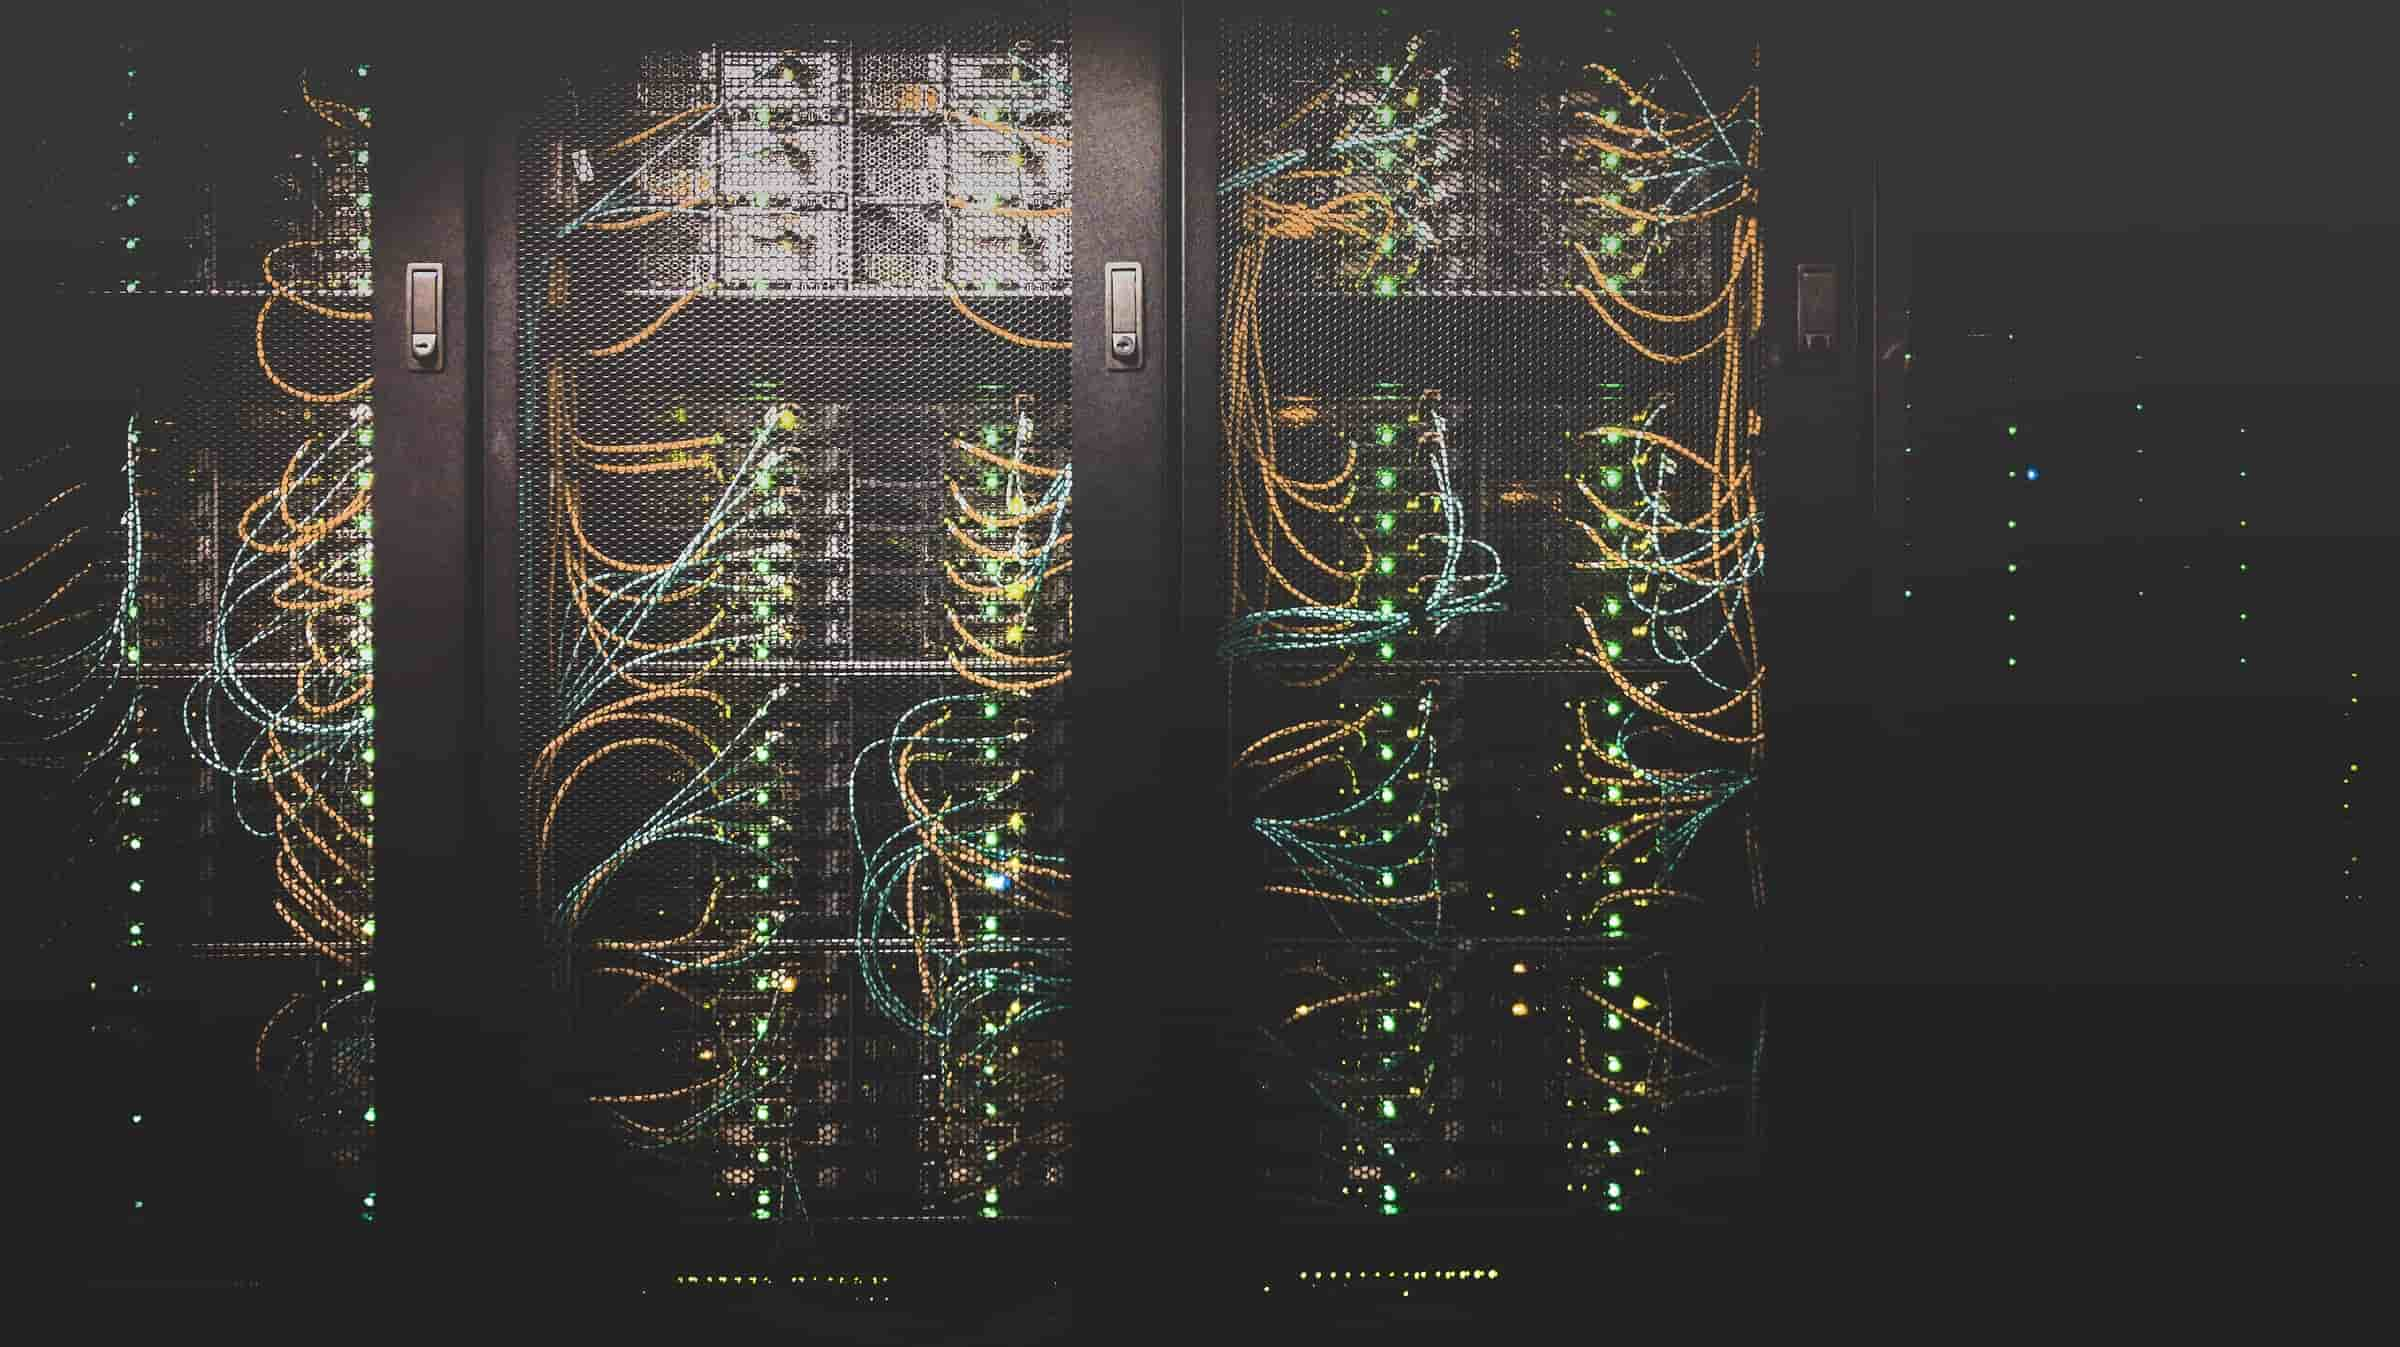 all flash array benefits; storage unit with too many wires